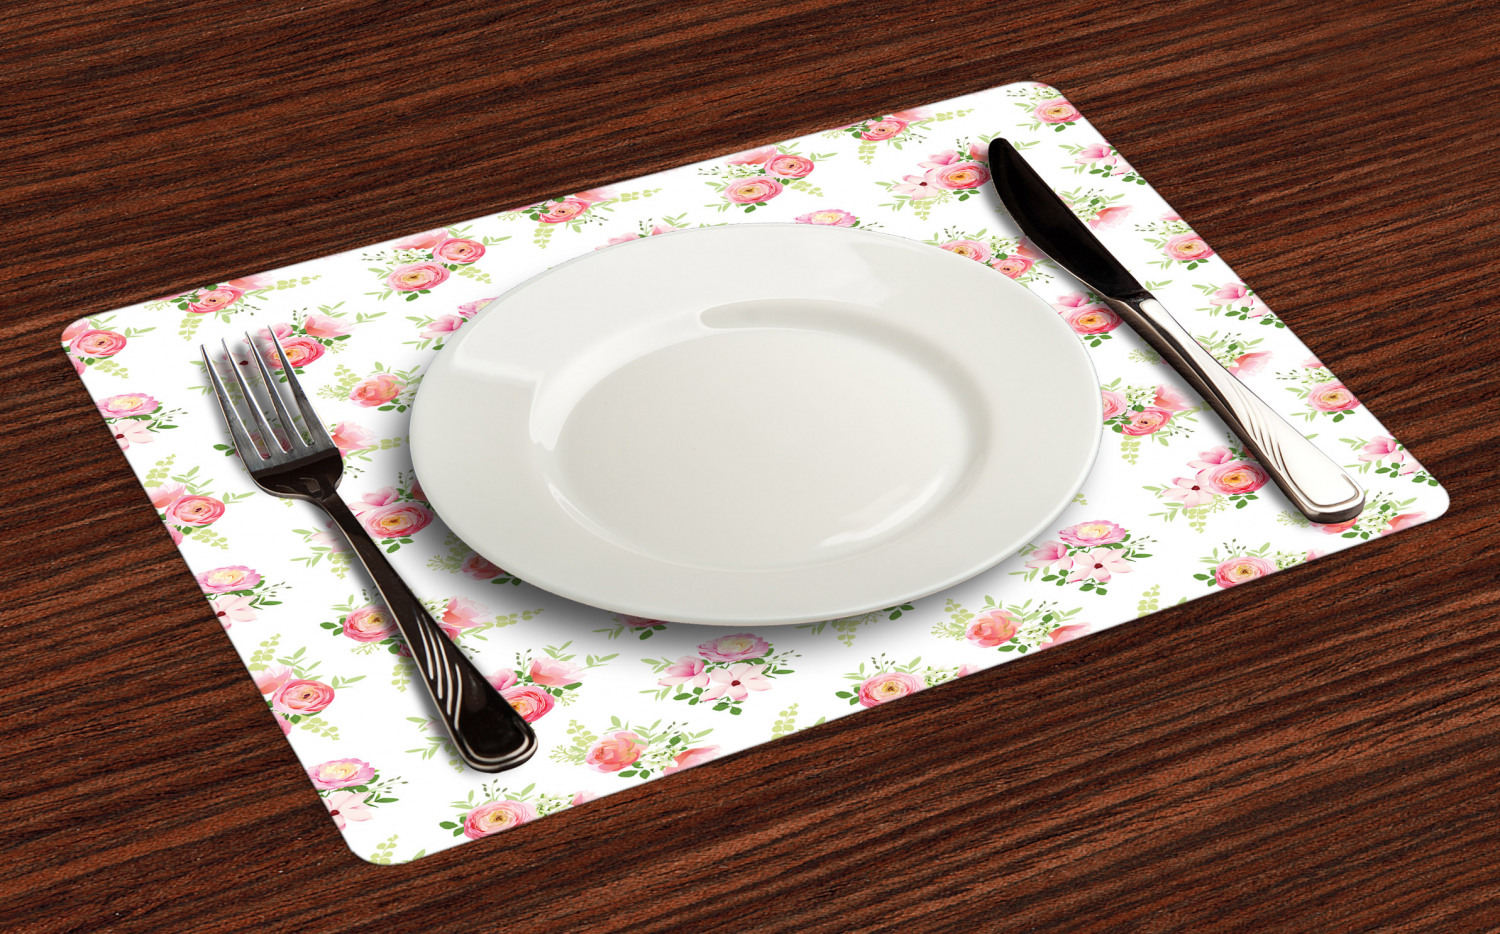 Ambesonne-Flower-Pattern-Placemat-Set-of-4-Fabric-Place-Mats-for-Table-Decor thumbnail 89